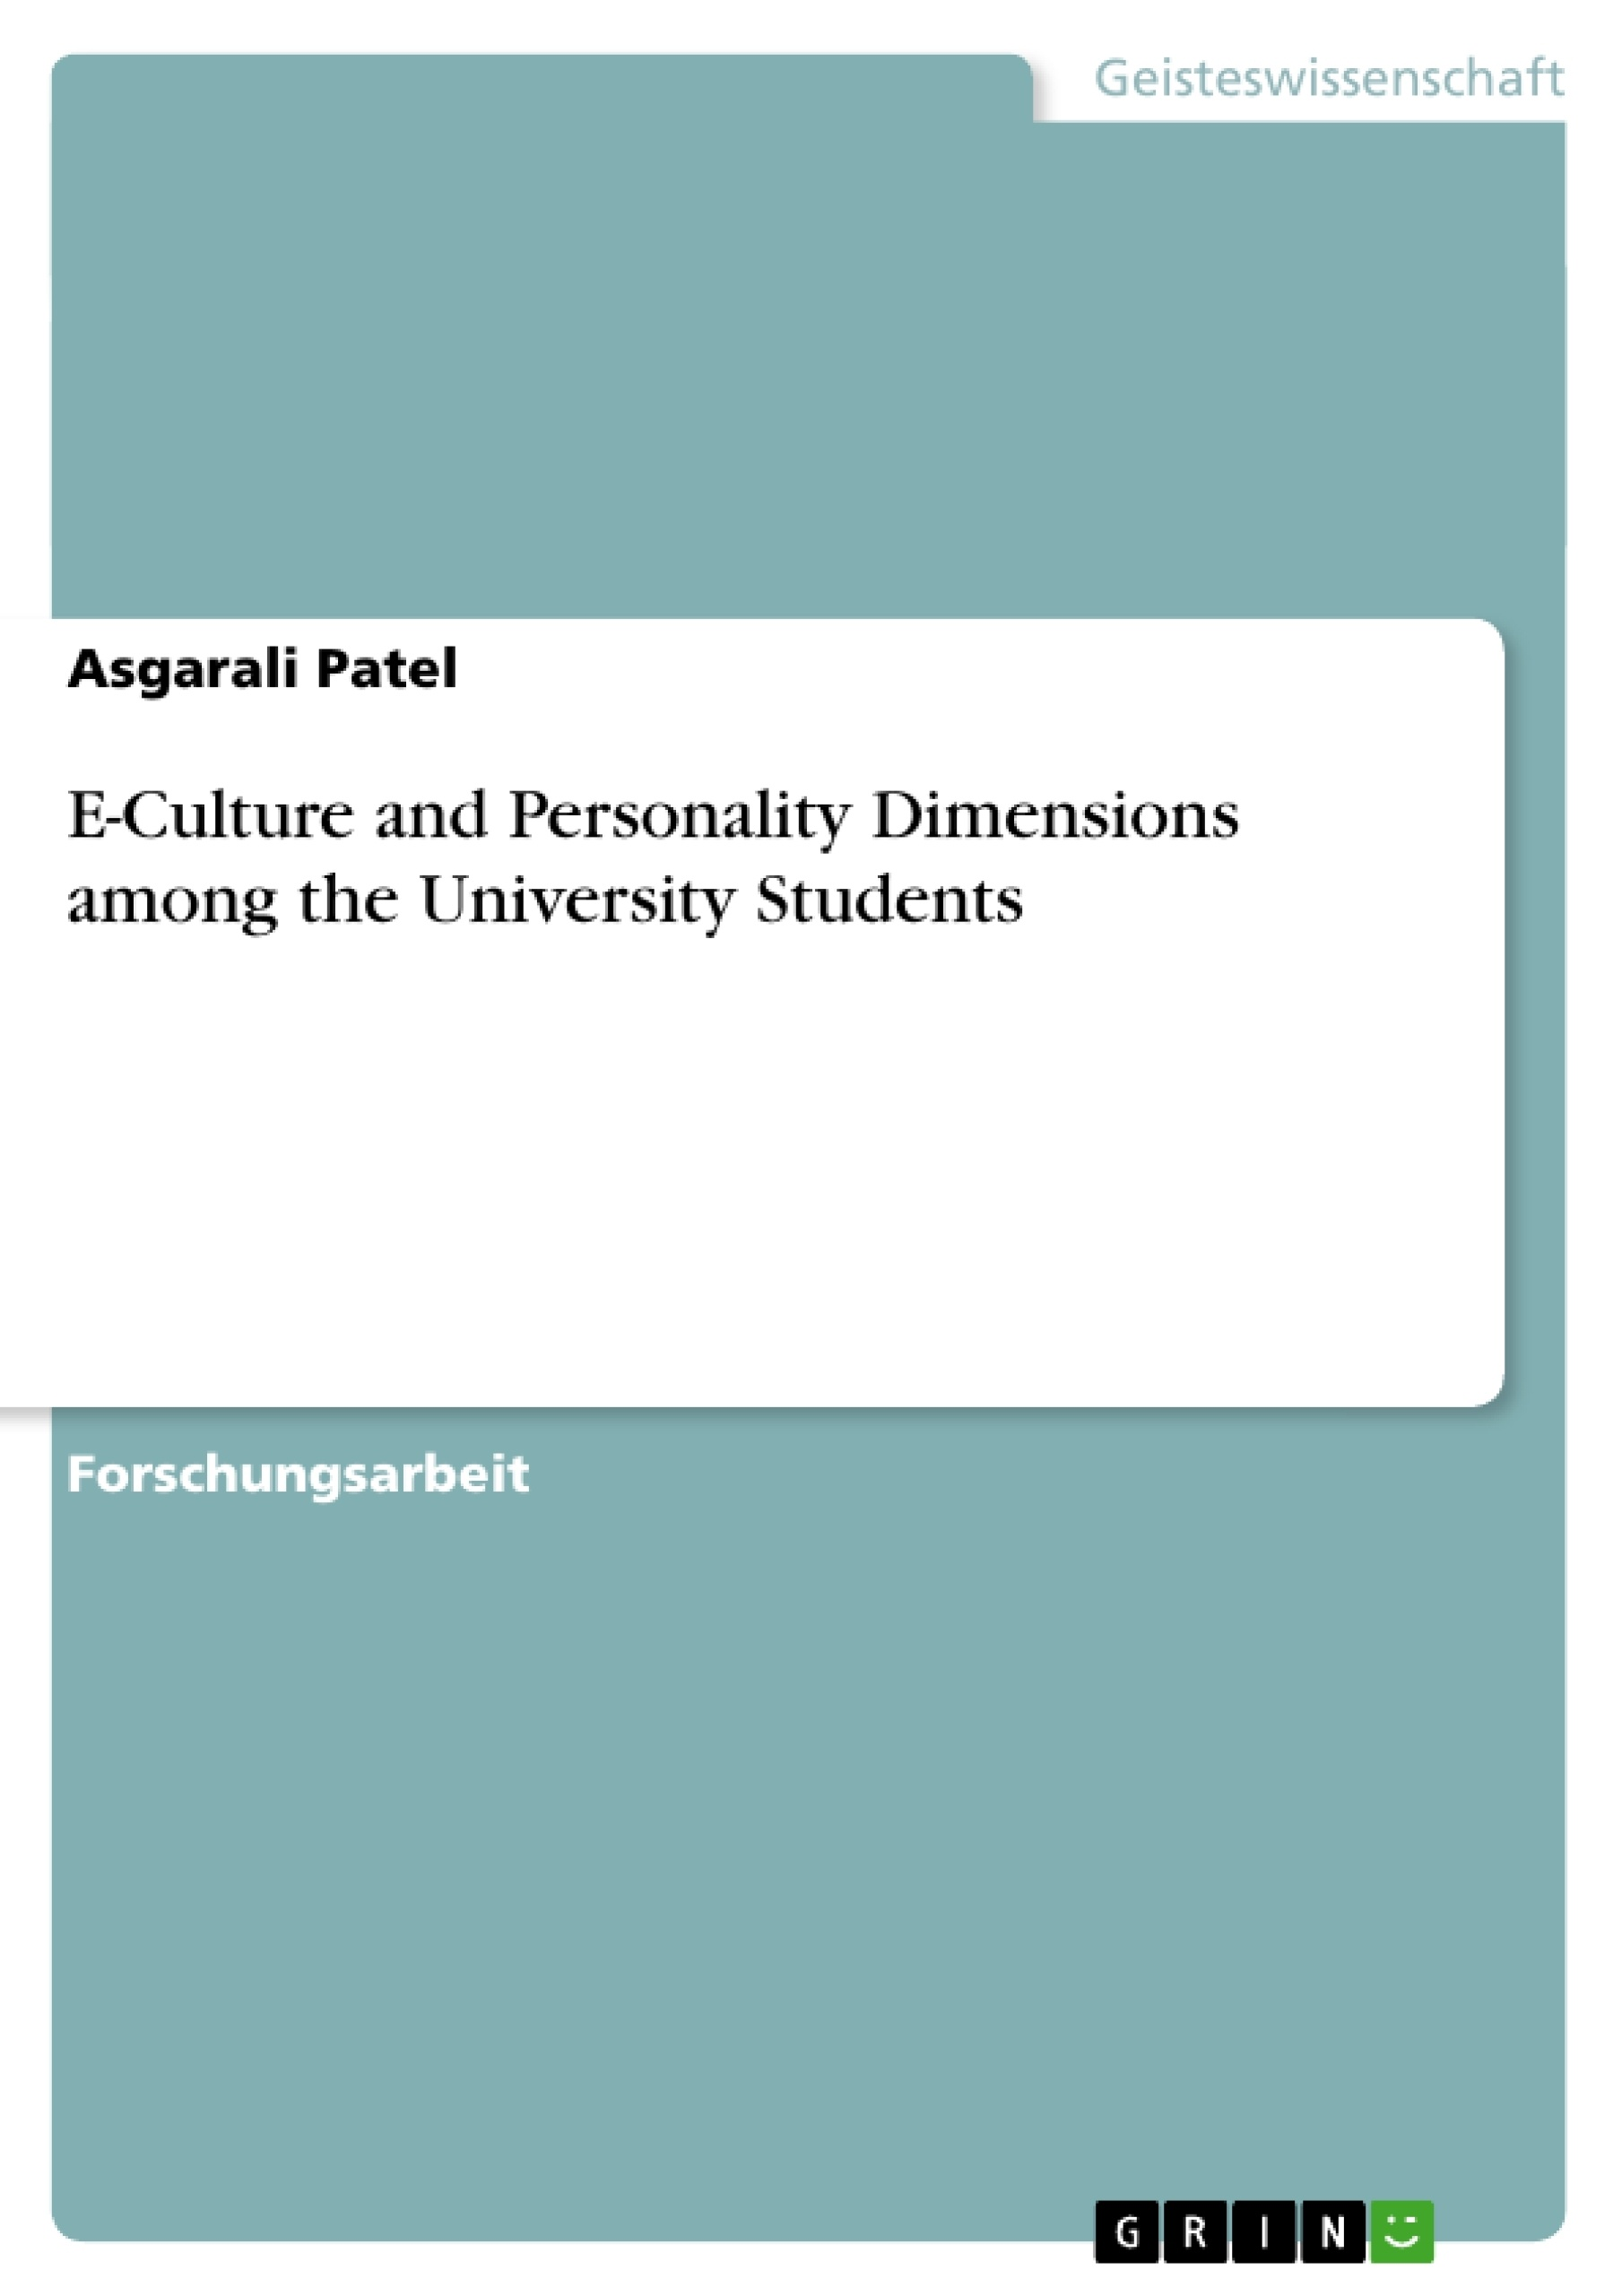 Titel: E-Culture and Personality Dimensions among the University Students